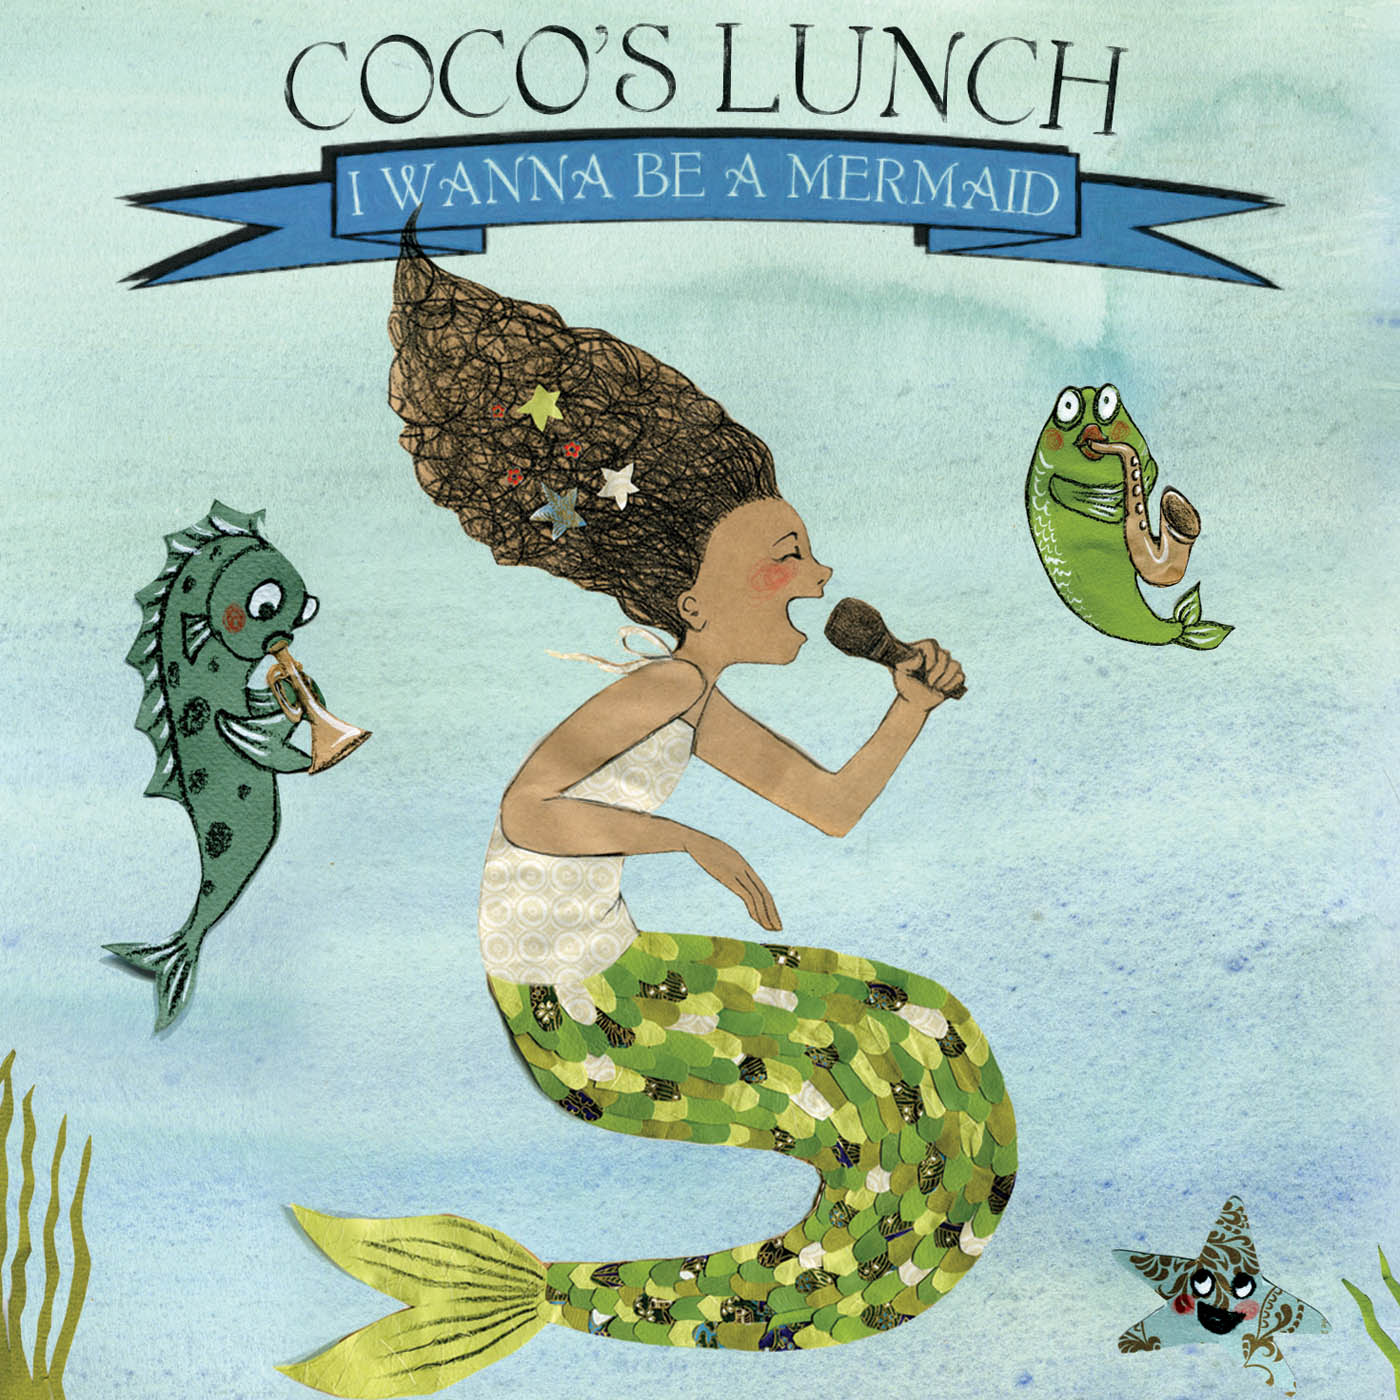 coco's lunch i wanna be a mermaid